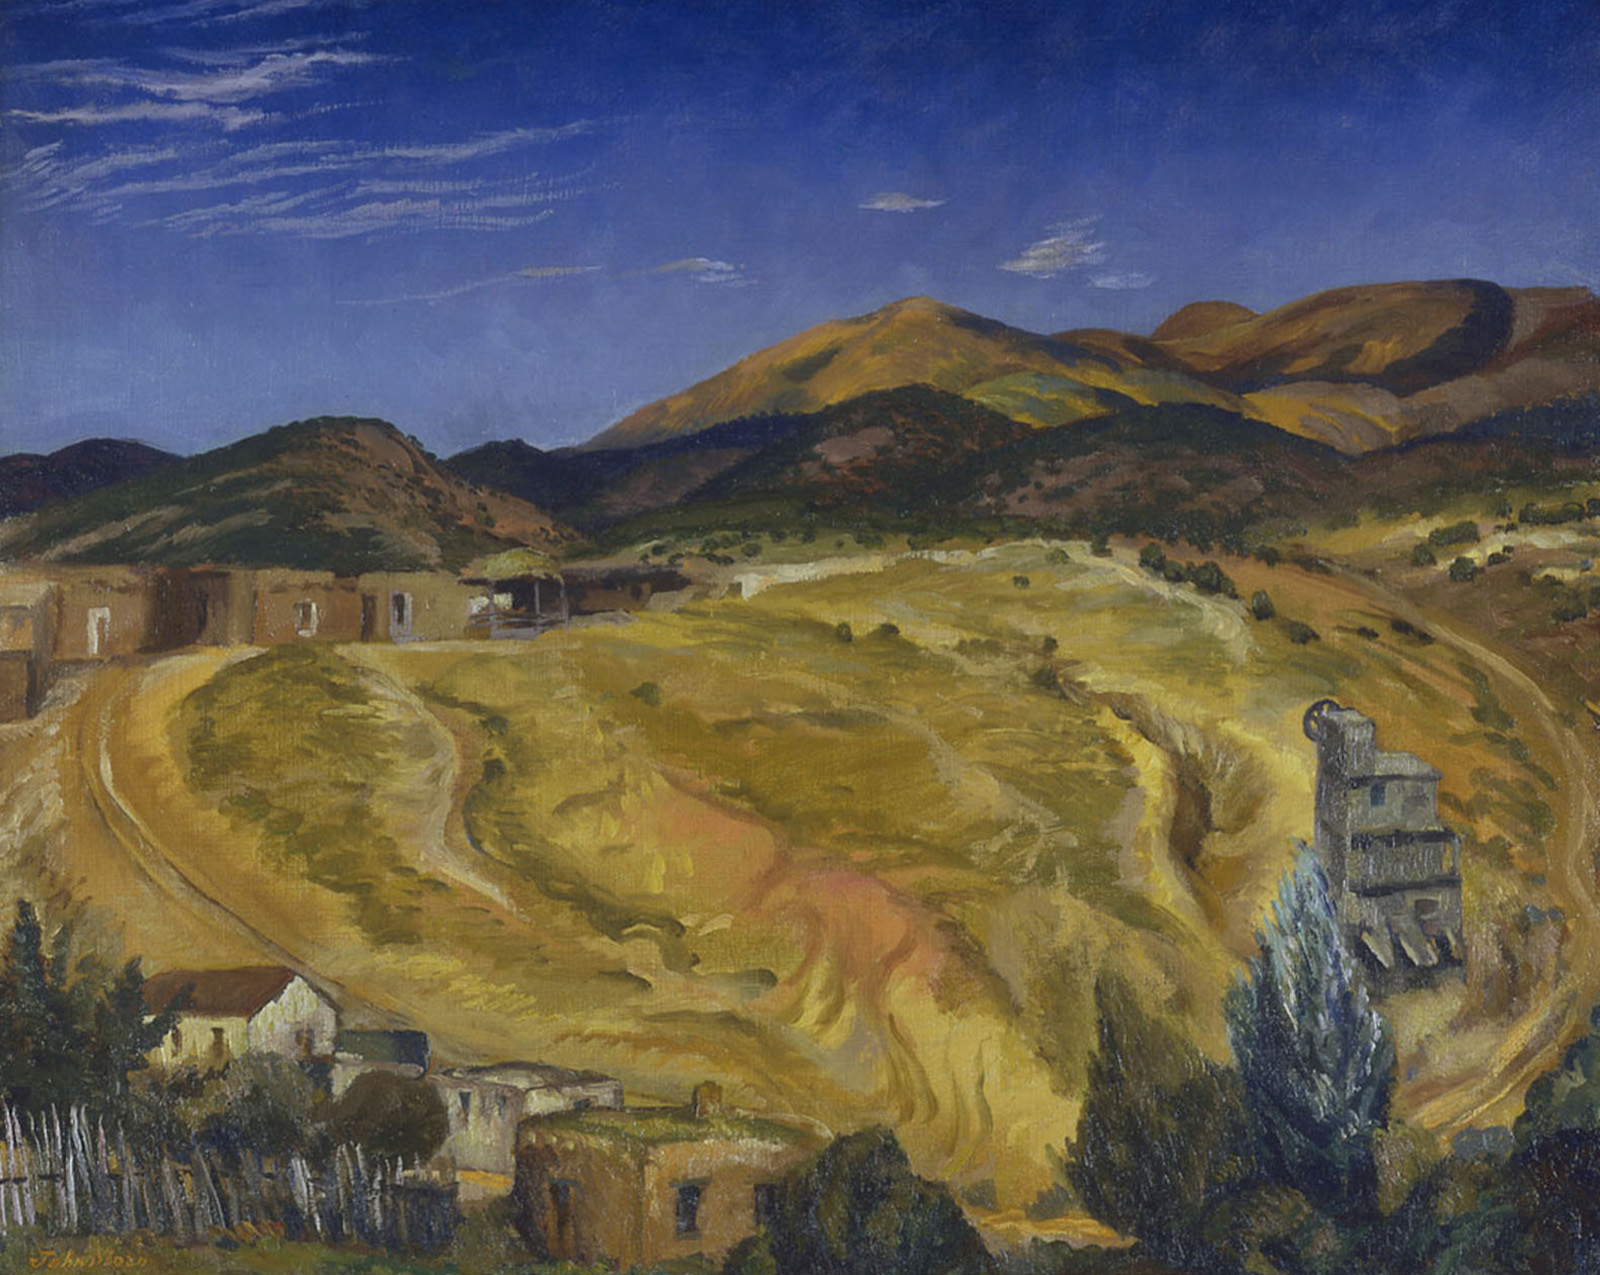 Painting of yellow field, mountains, houses in foreground, bright blue sky